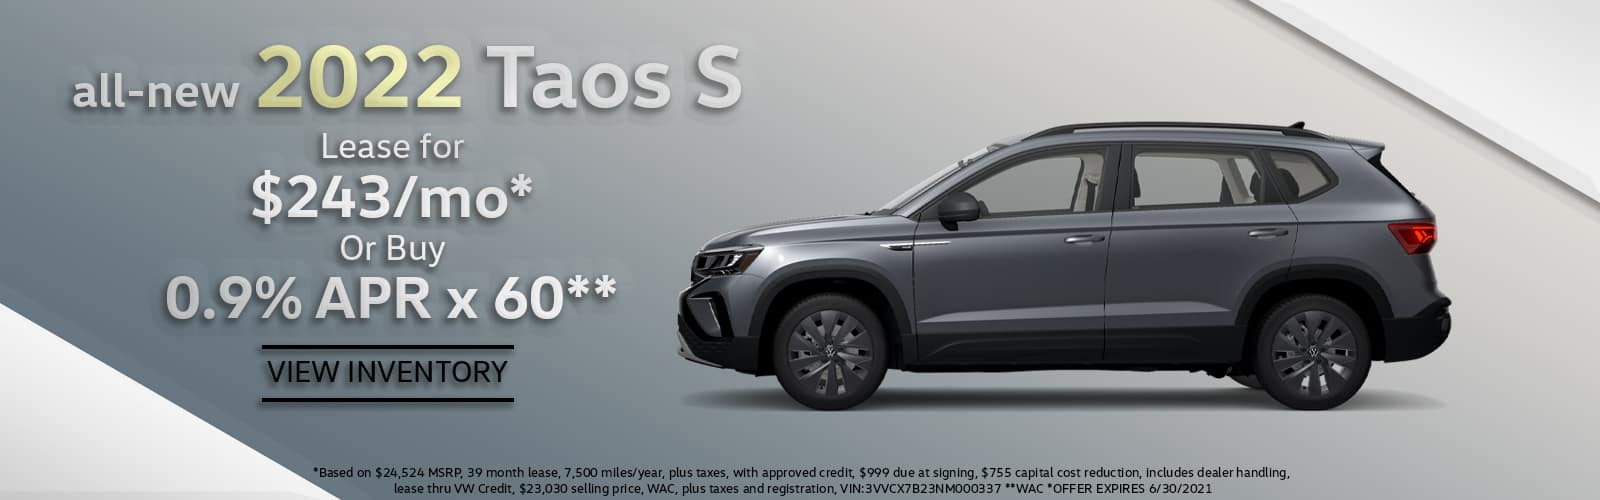 All-new 2022 VW Taos Lease or Purchase Special Denver